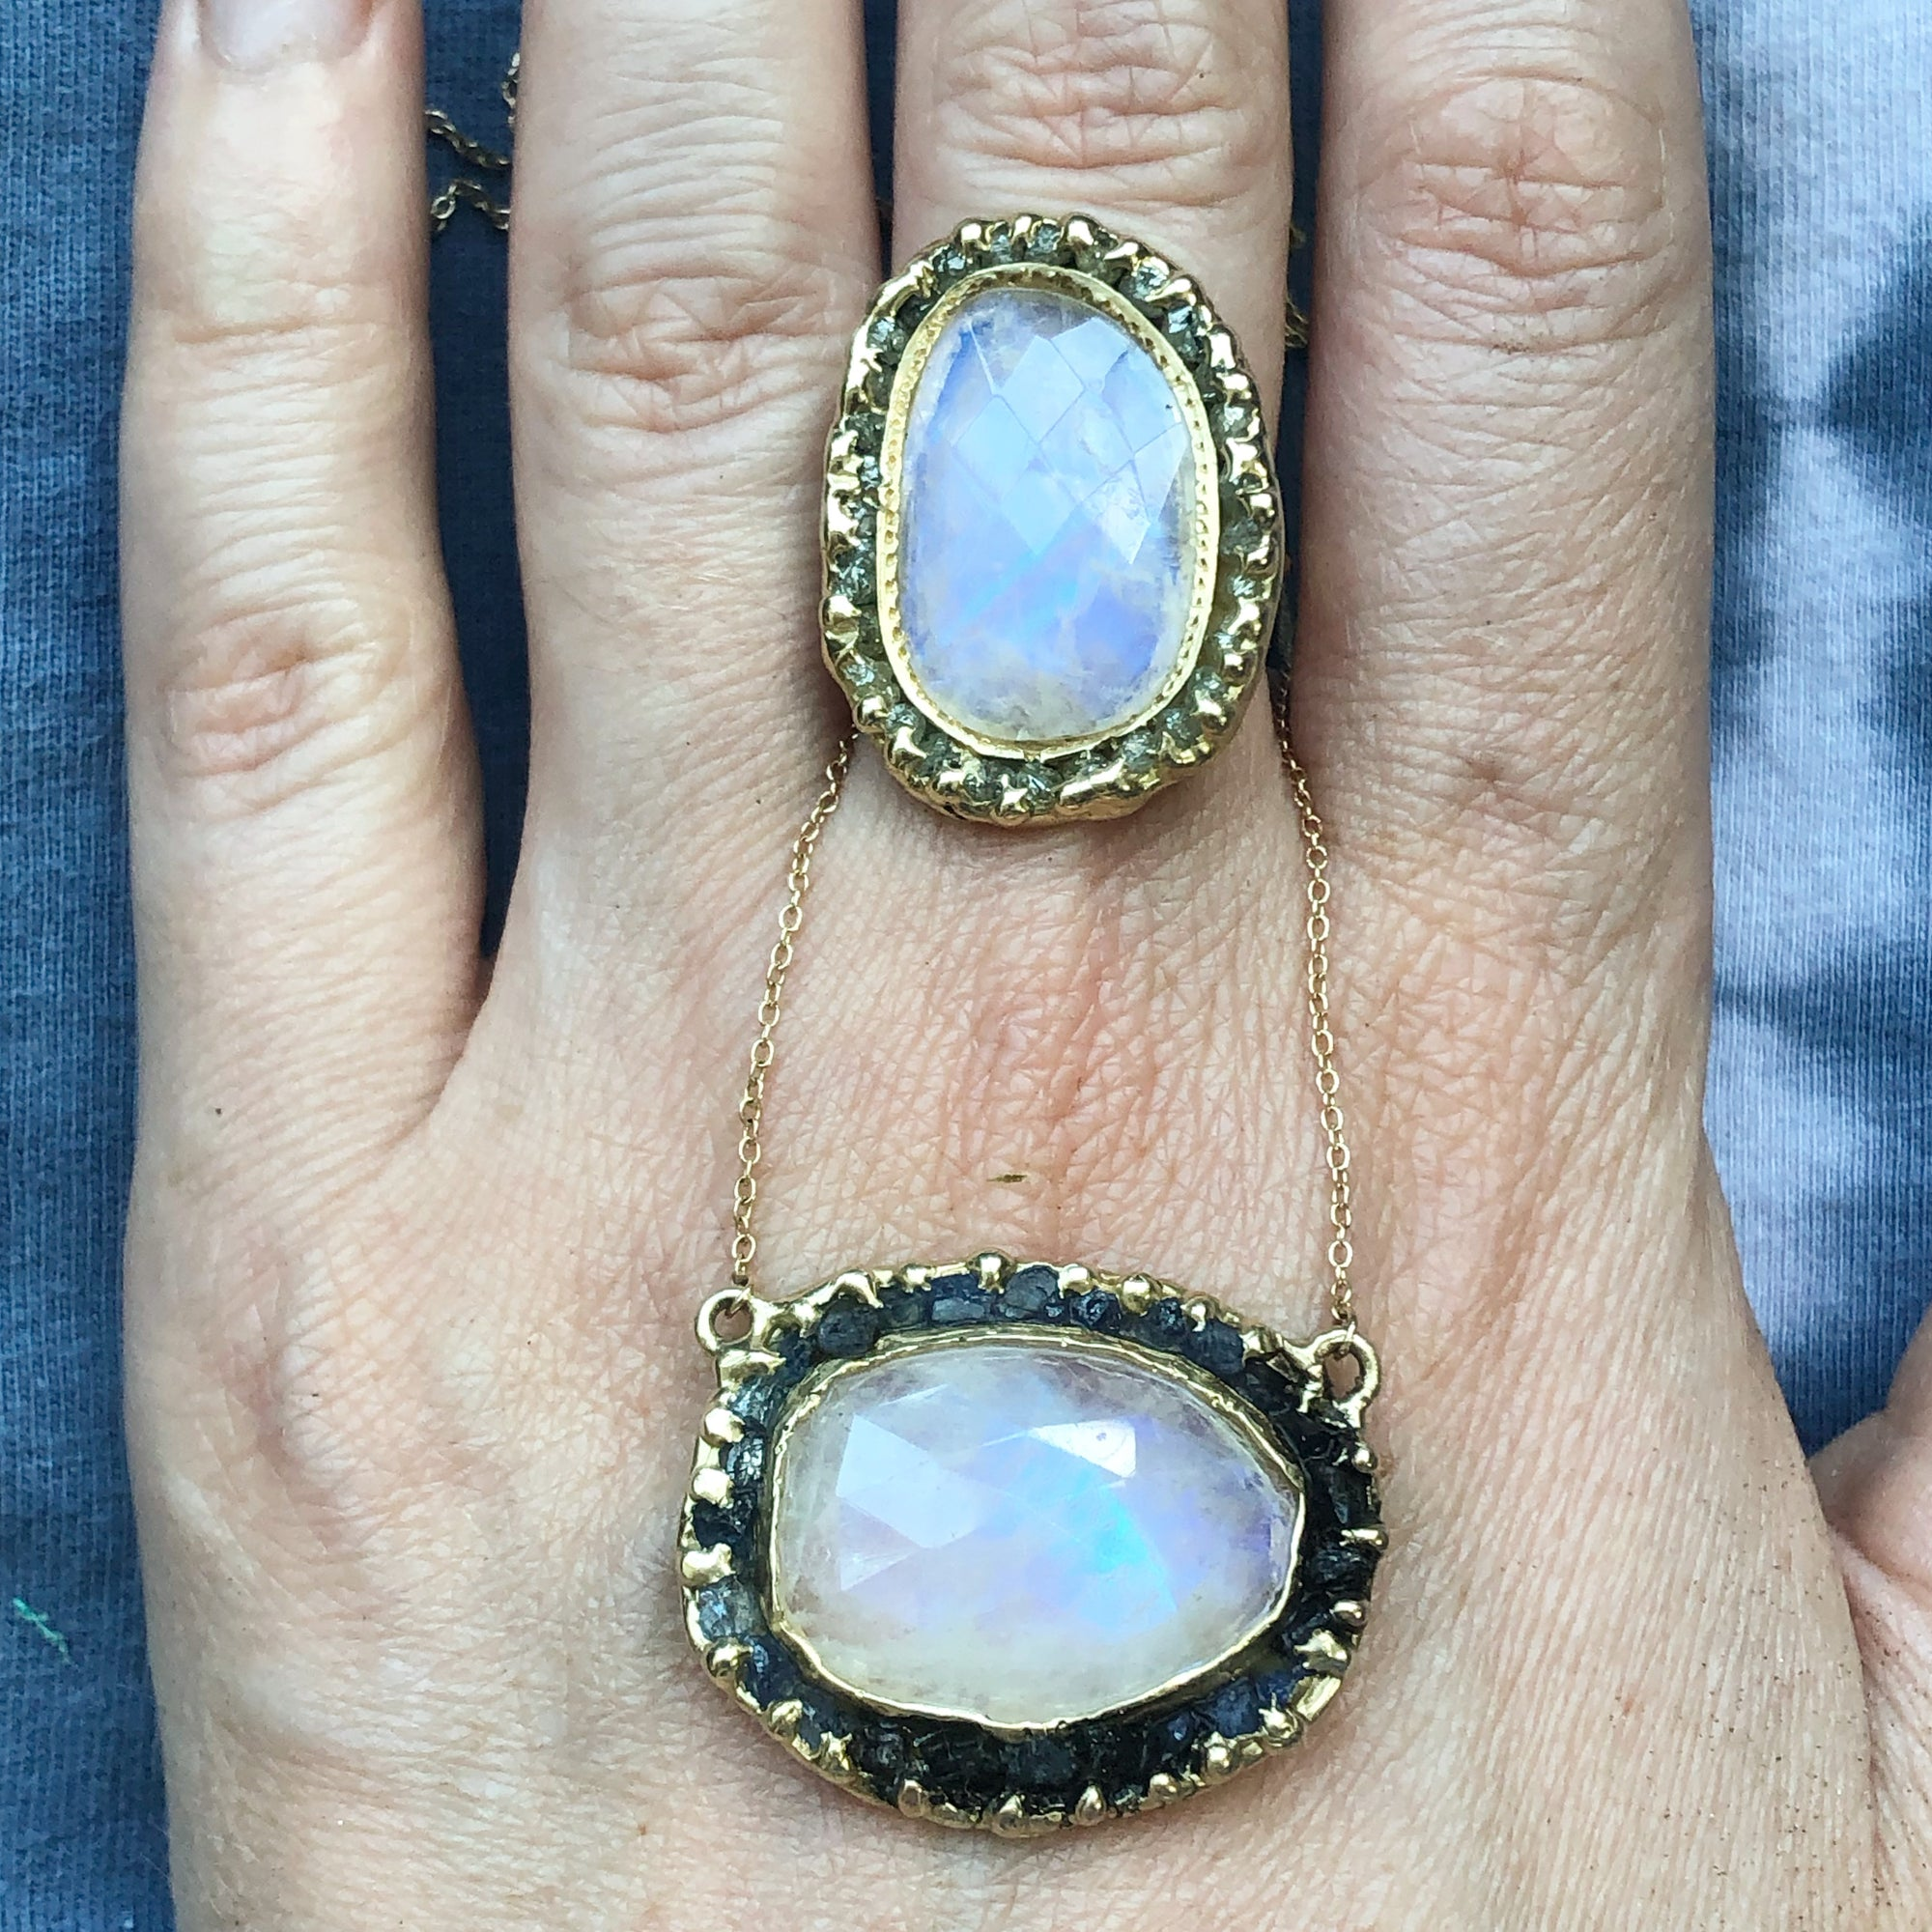 June Birthstones: Moonstone & Pearls